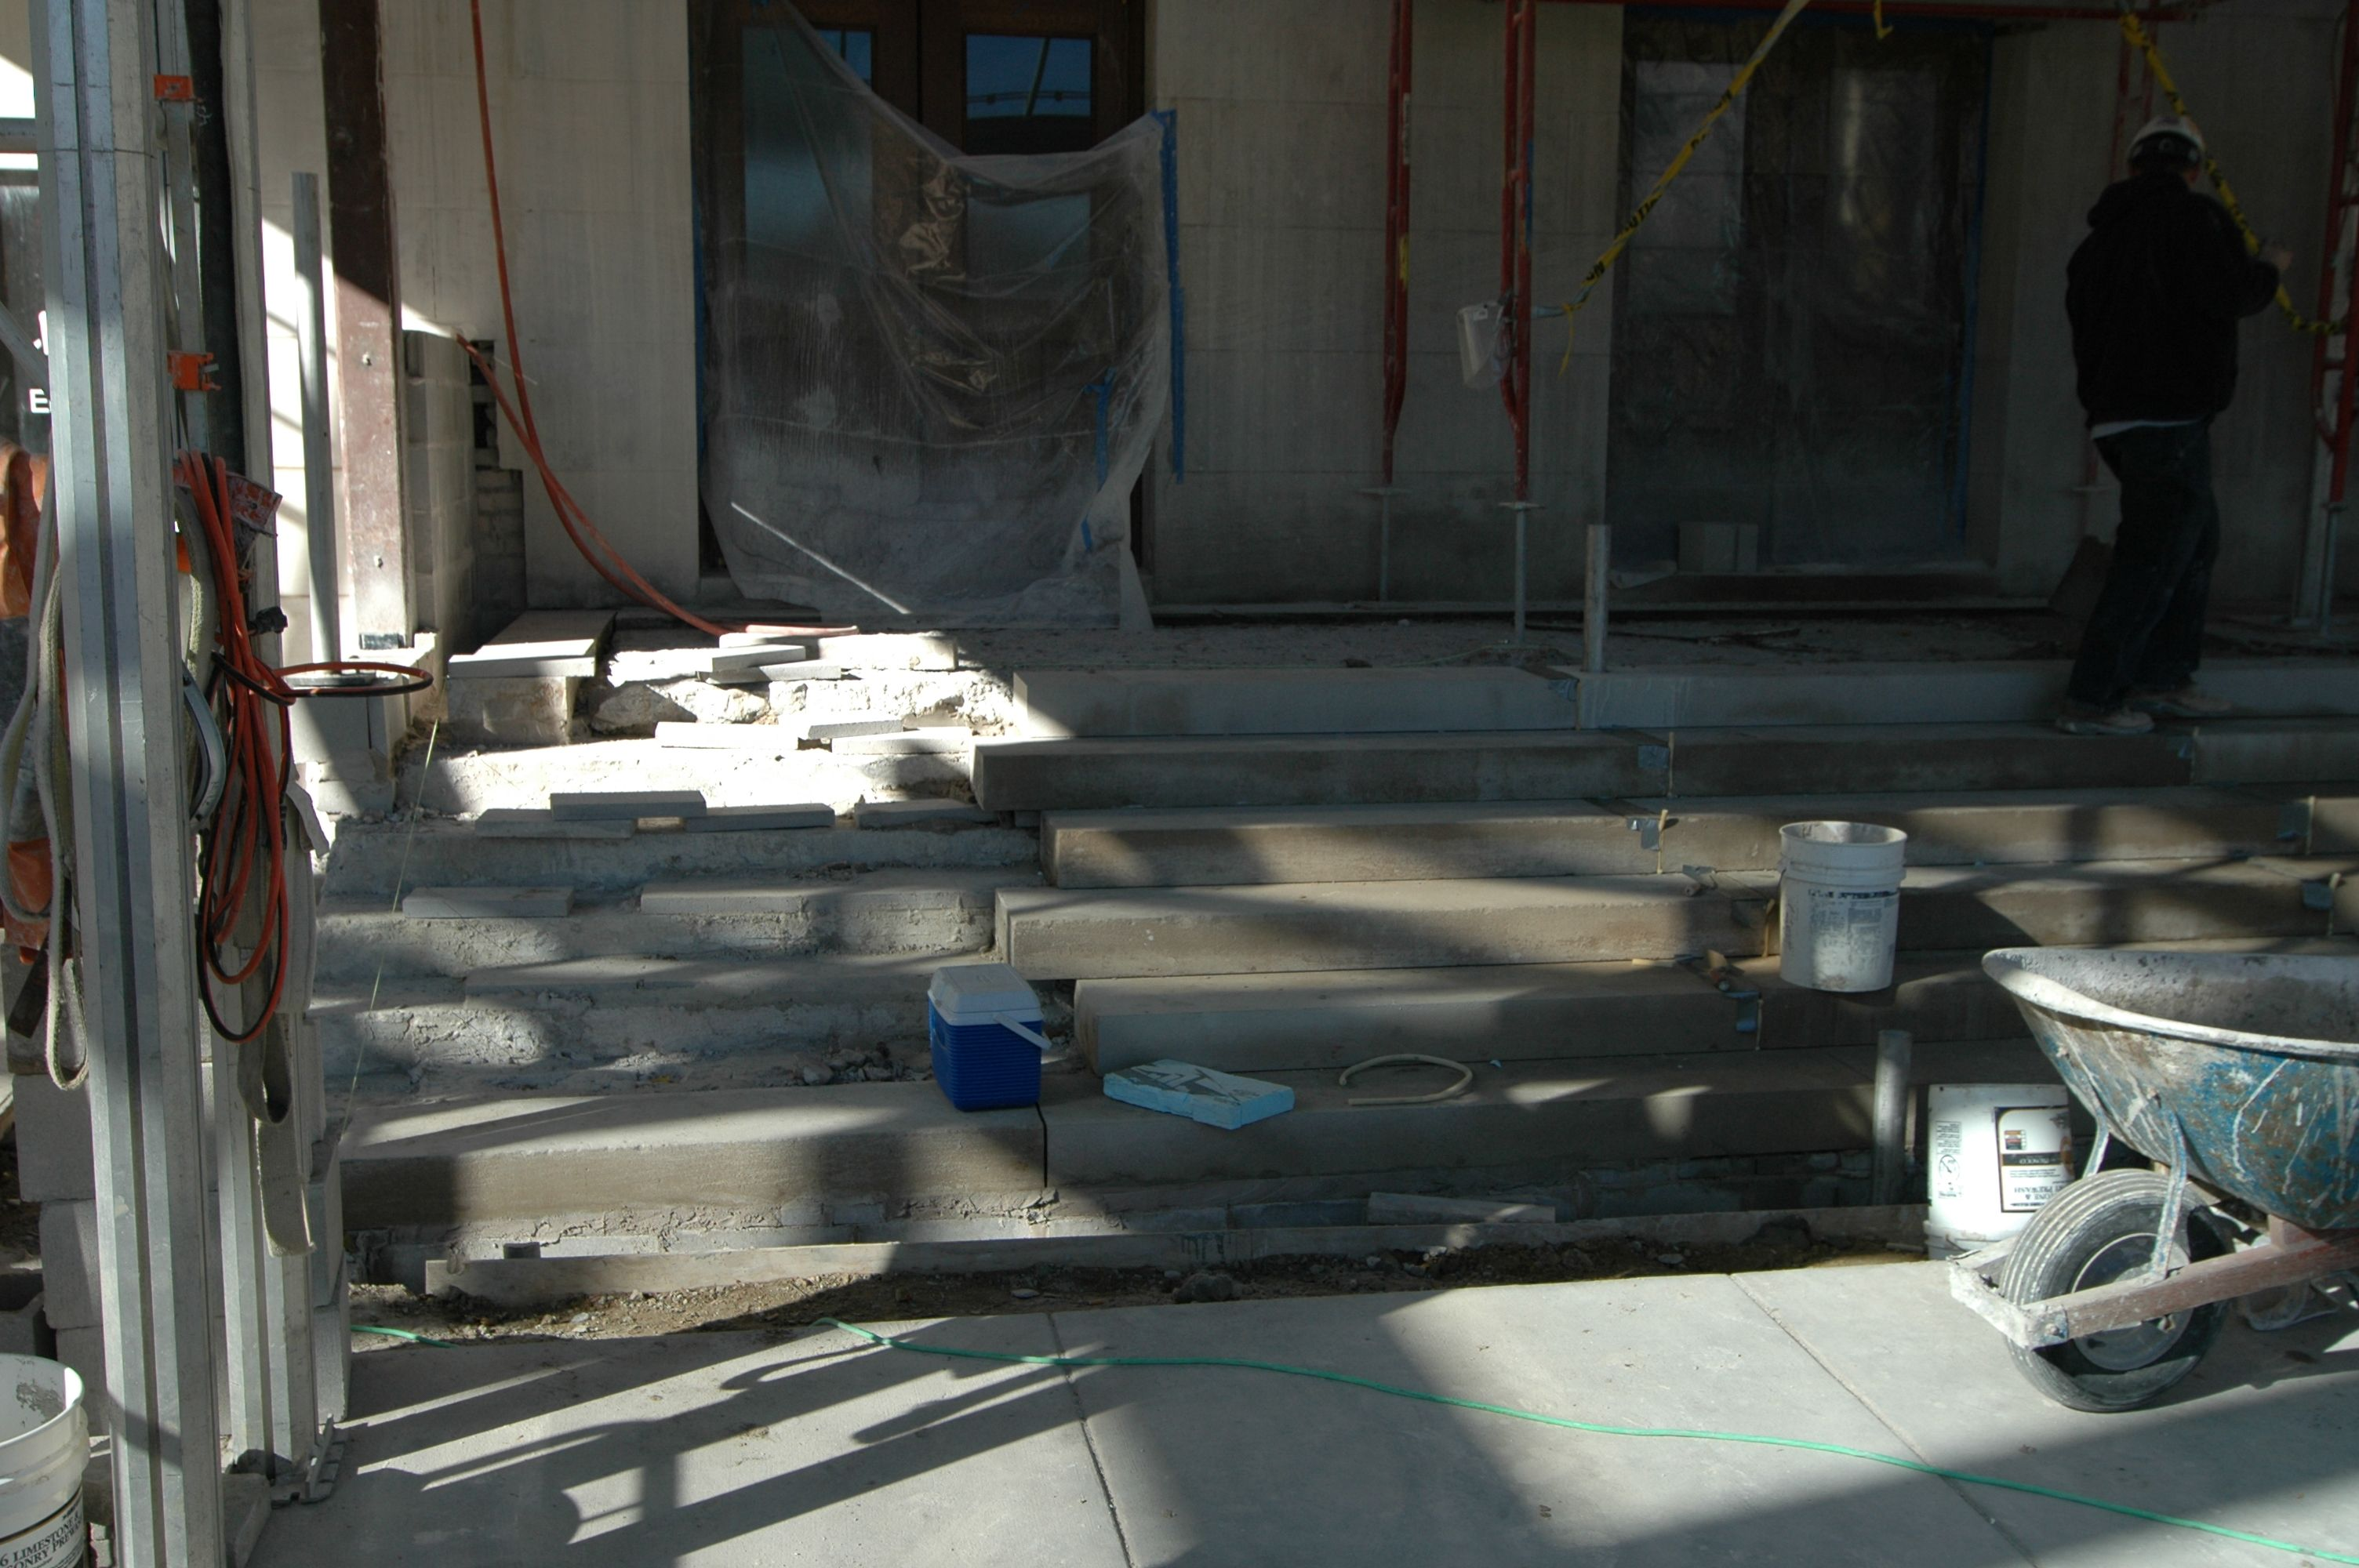 Cement and stair repair in the process of being completed